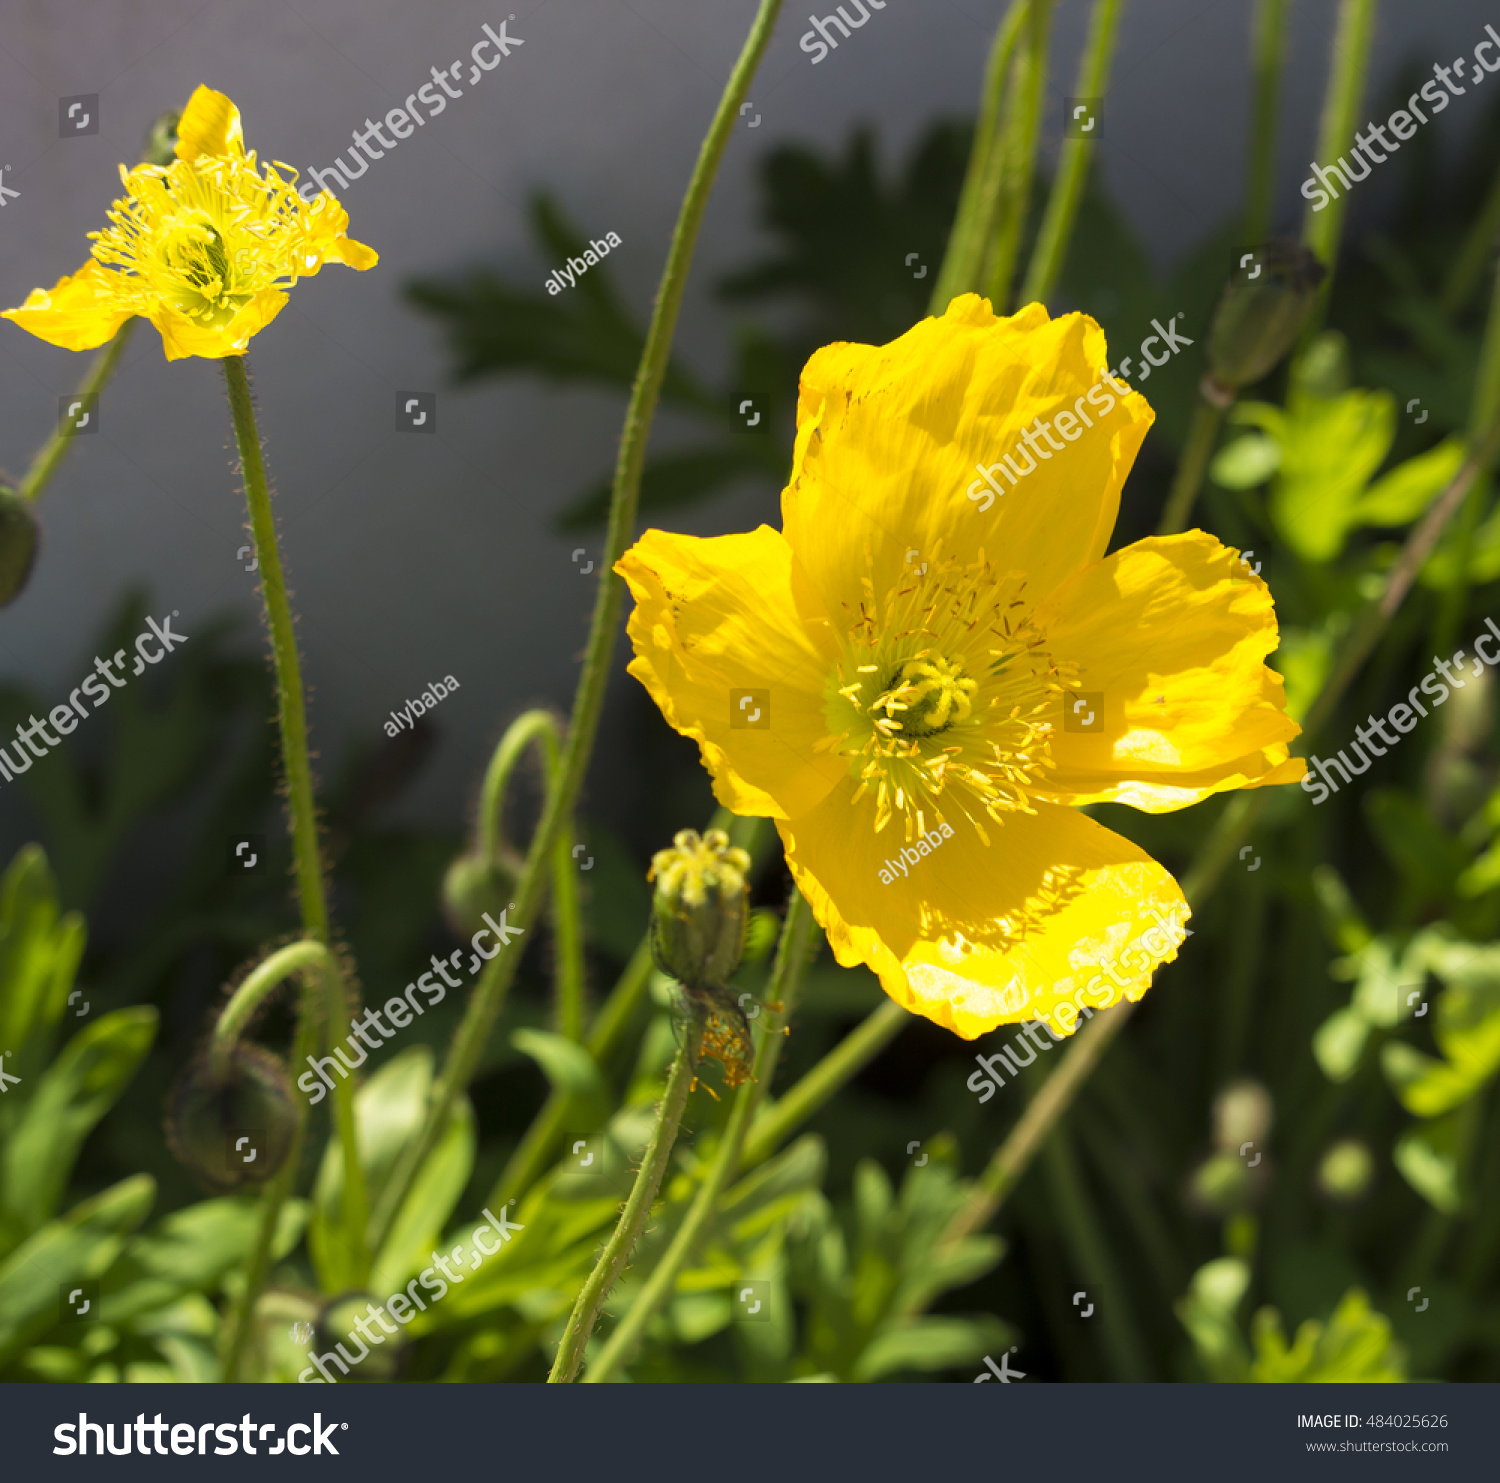 Dazzling Bright Yellow Poppies Flowering Plants In The Subfamily